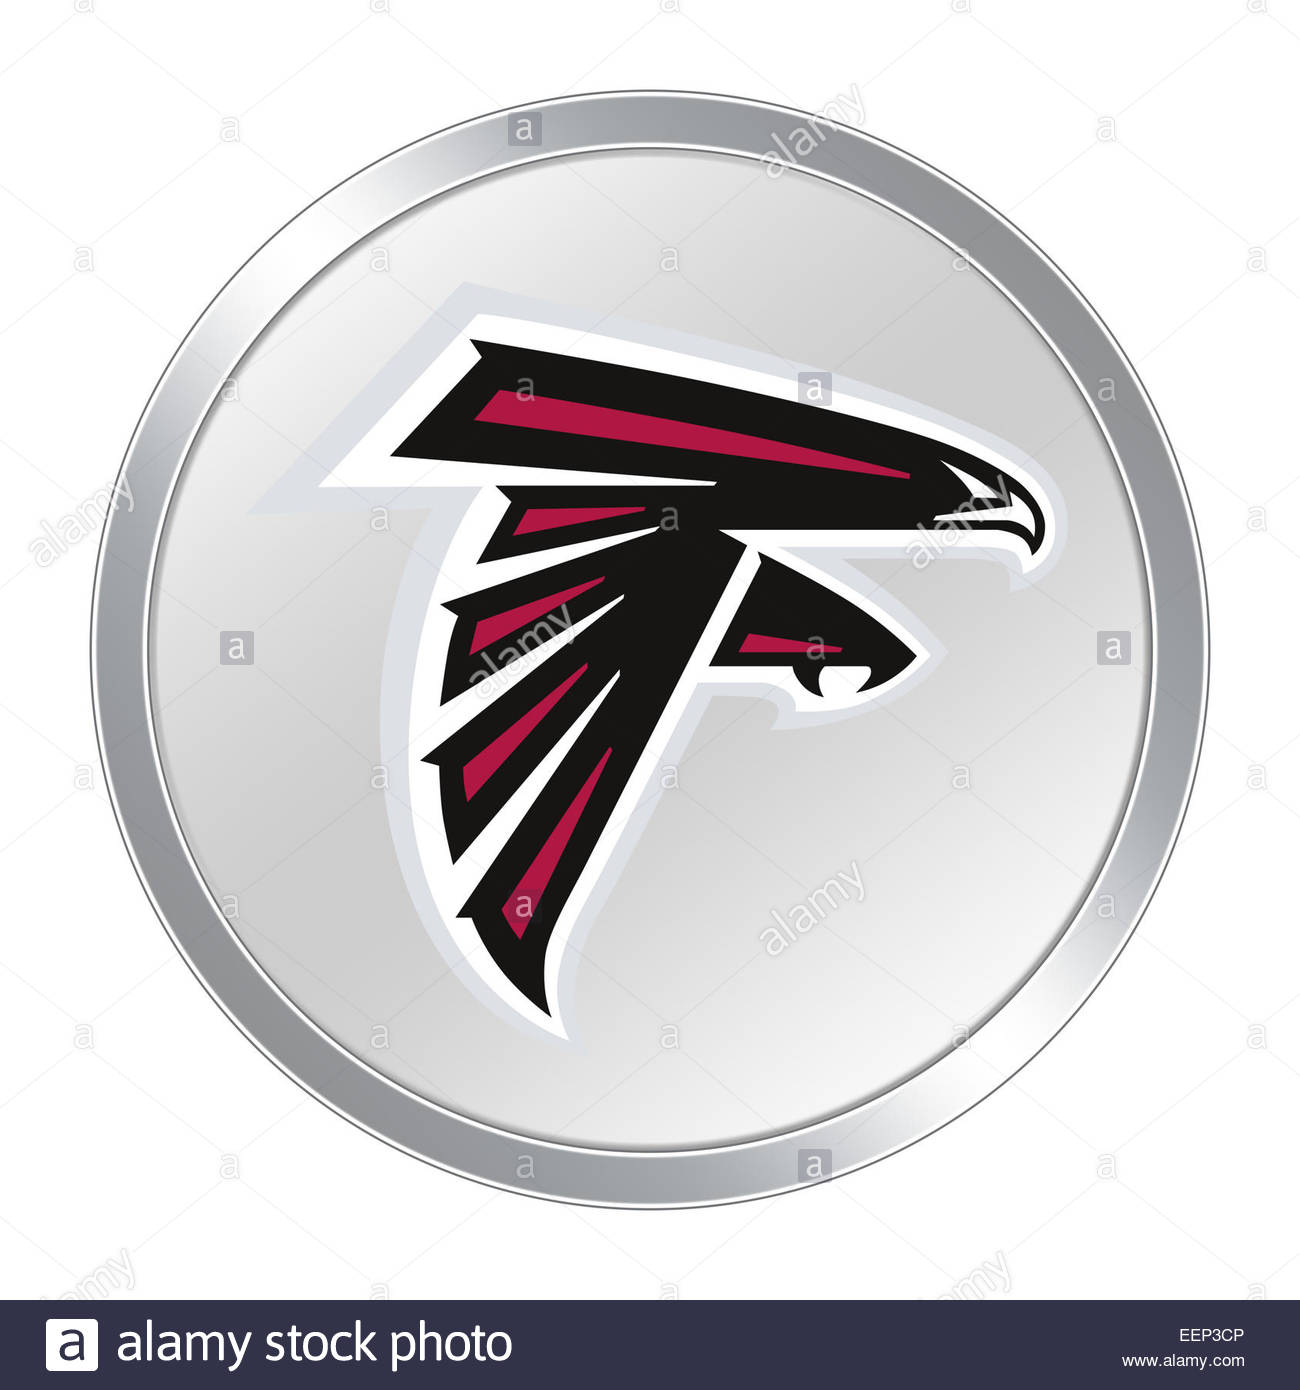 Atlanta Falcons Logo Symbol Buttons Stockfoto Bild 77932310 Alamy